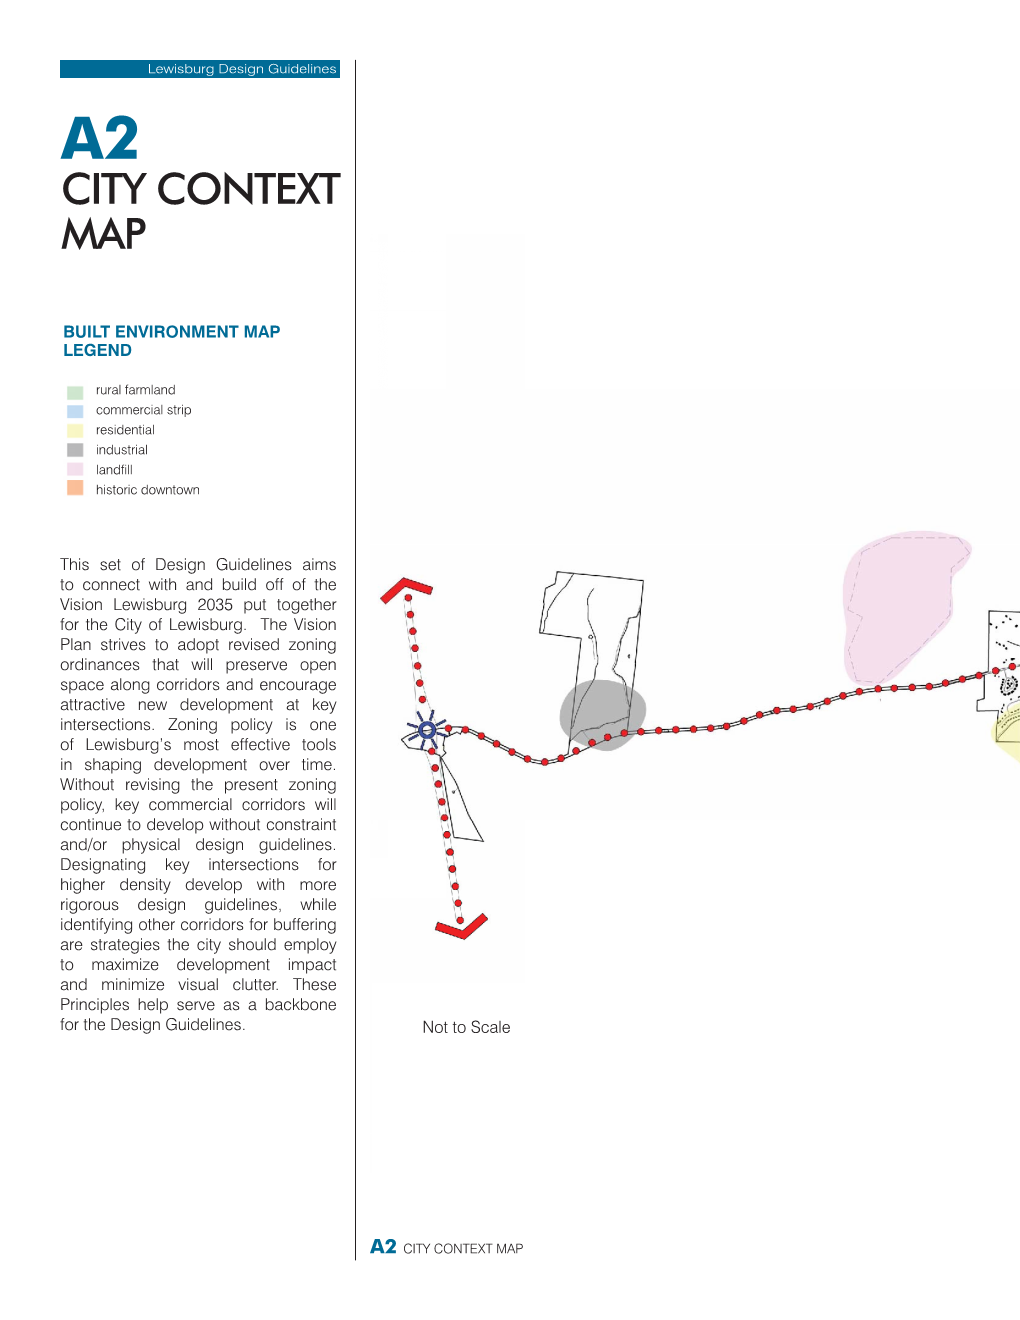 Sample page - City Context Map 1